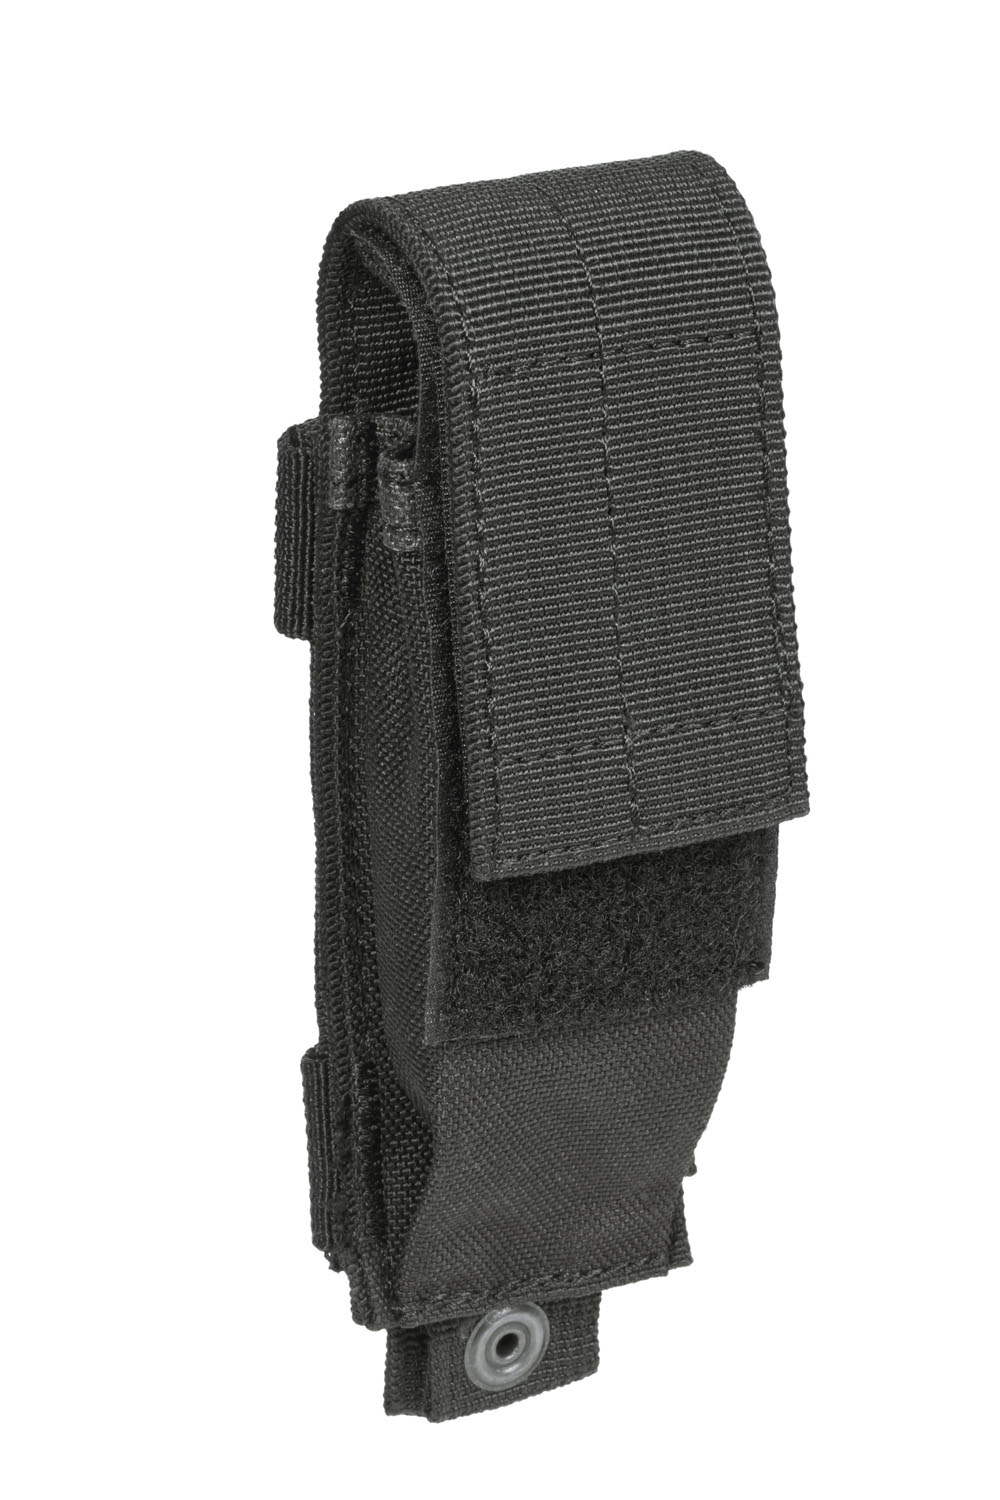 Pistol mag/folding knife/multitool pouch